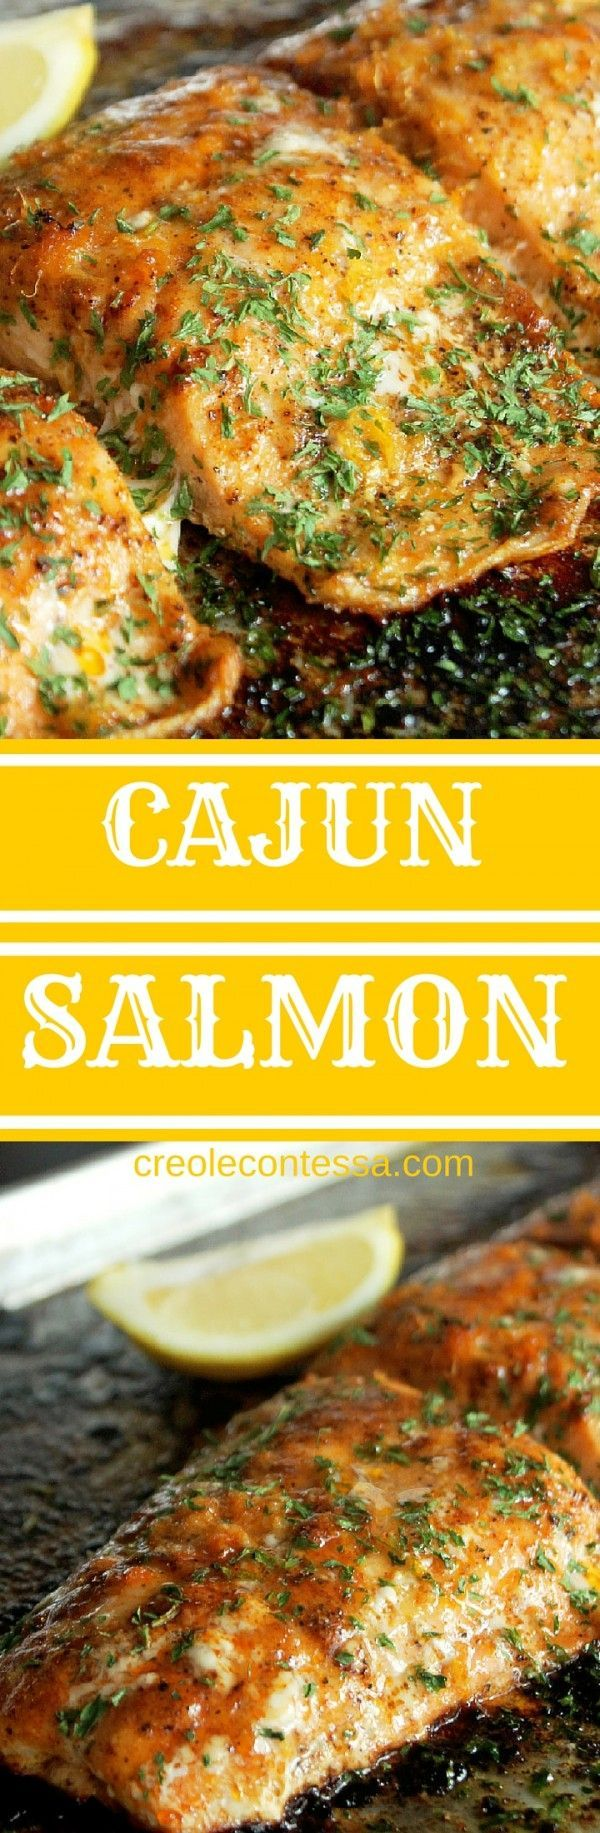 Get the recipe ♥ Cajun Salmon /recipes_to_go/